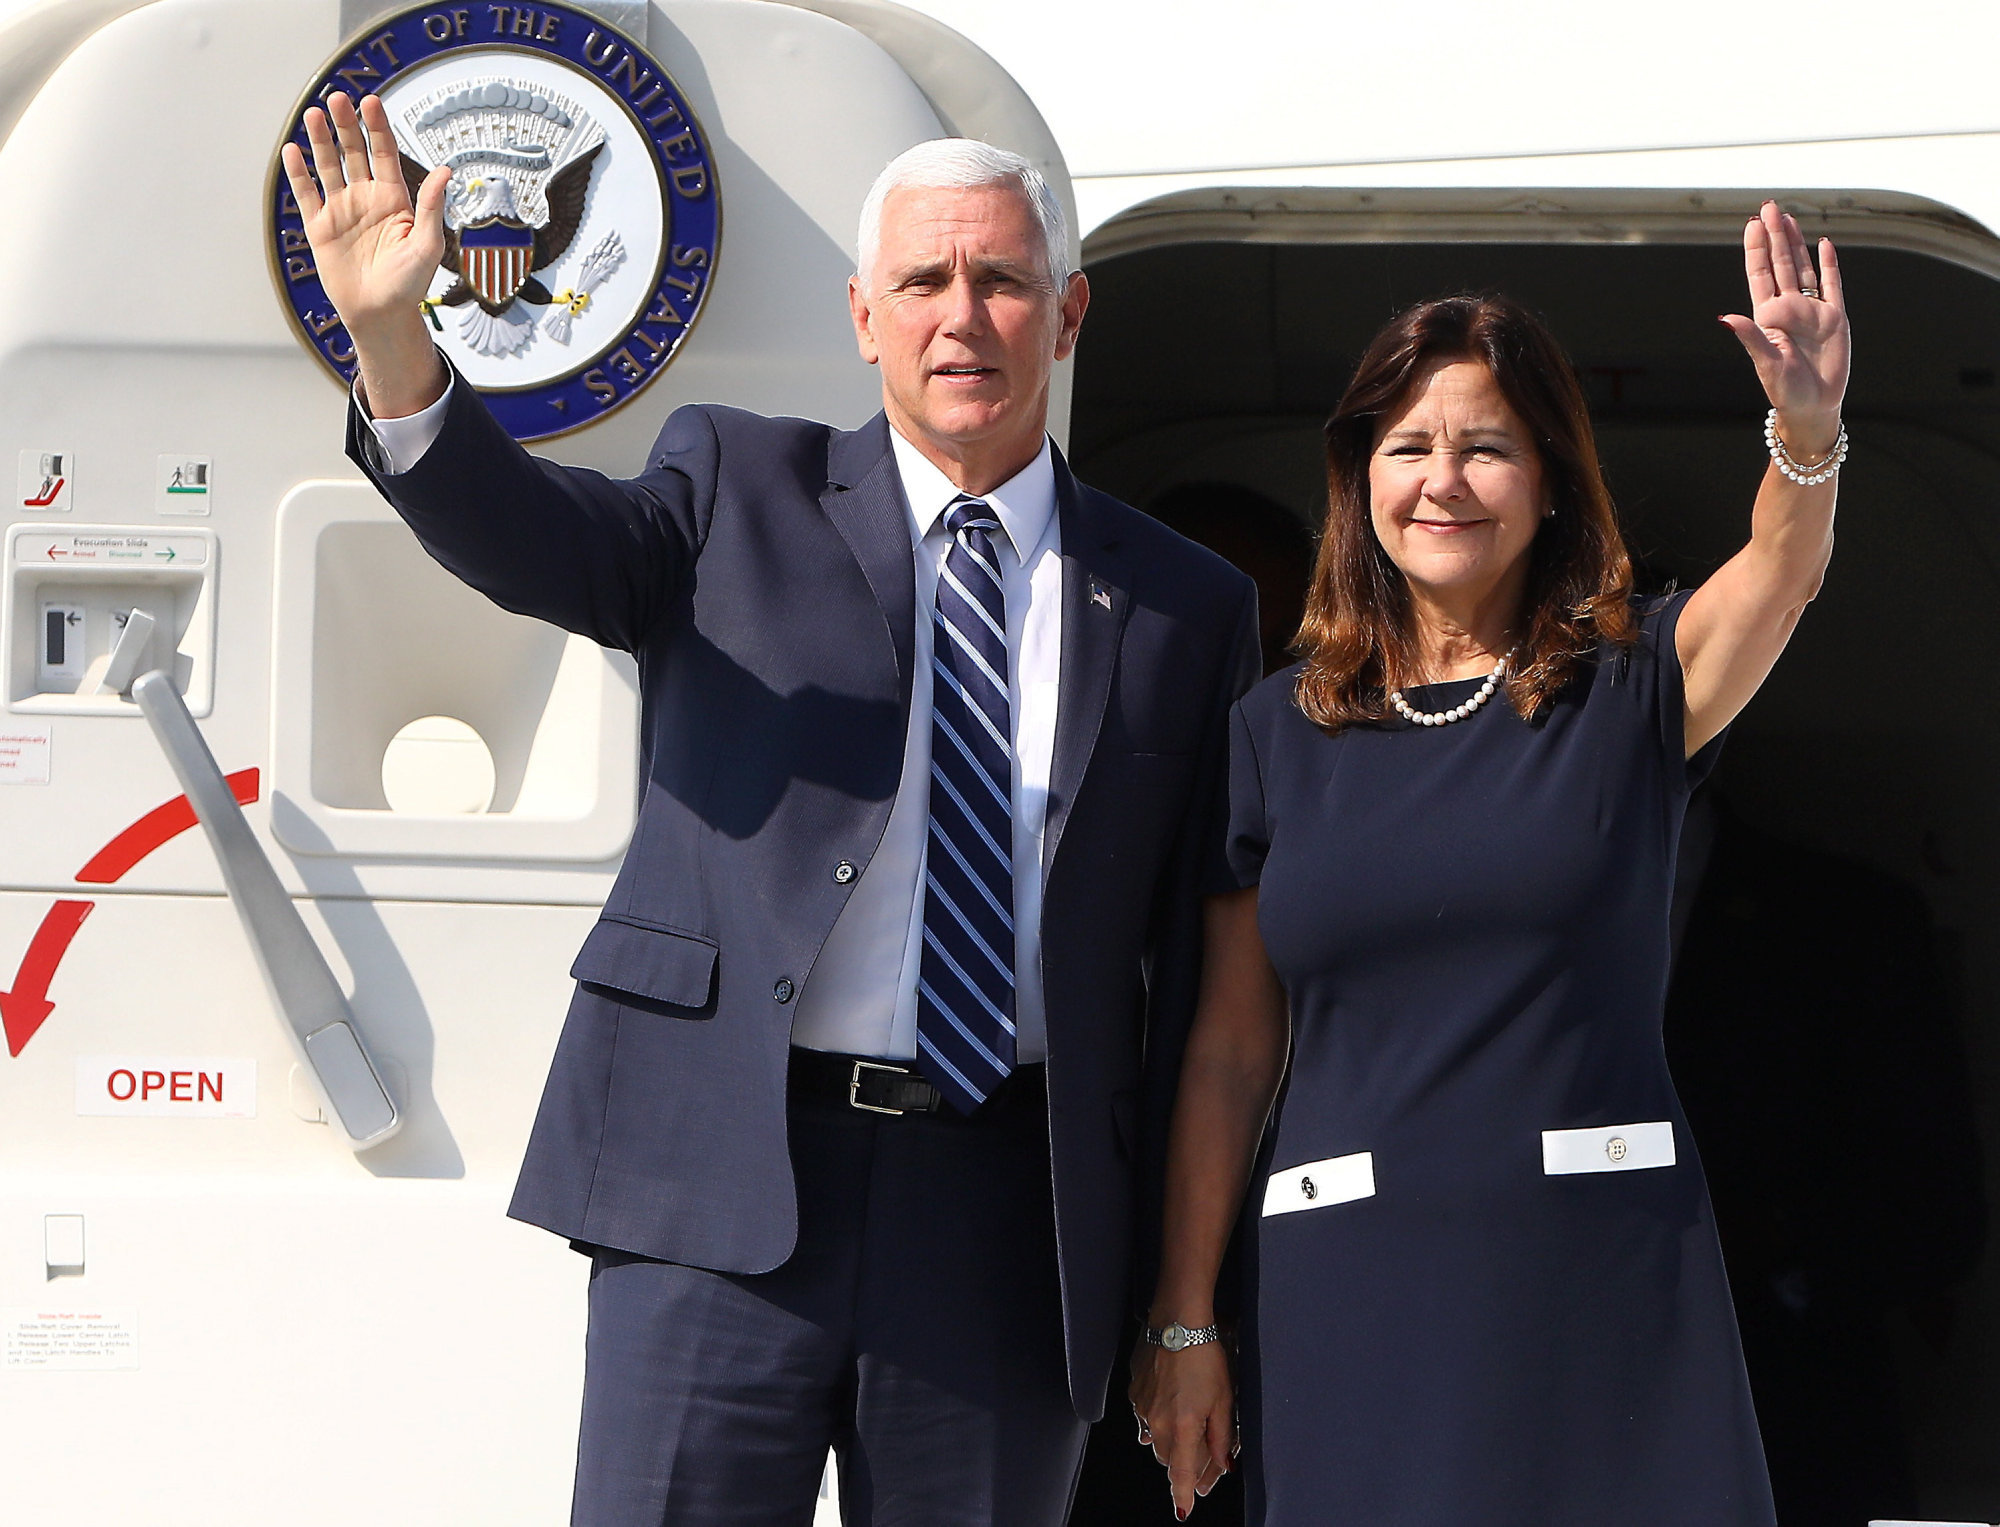 epa07809259 US Vice-President Mike Pence (L) and and his wife Karen Pence wave after arriving at Okecie Airport to the ceremony marking 80th anniversary of World War II outbreakin in Warsaw, Poland, 01 September 2019. Pence represent US President Donald Trump, who has had to postpone his visit planned for 01-02 September, explaining that all federal government resources need to be focused on the incoming hurricane Dorian.  EPA-EFE/Rafal Guz POLAND OUT